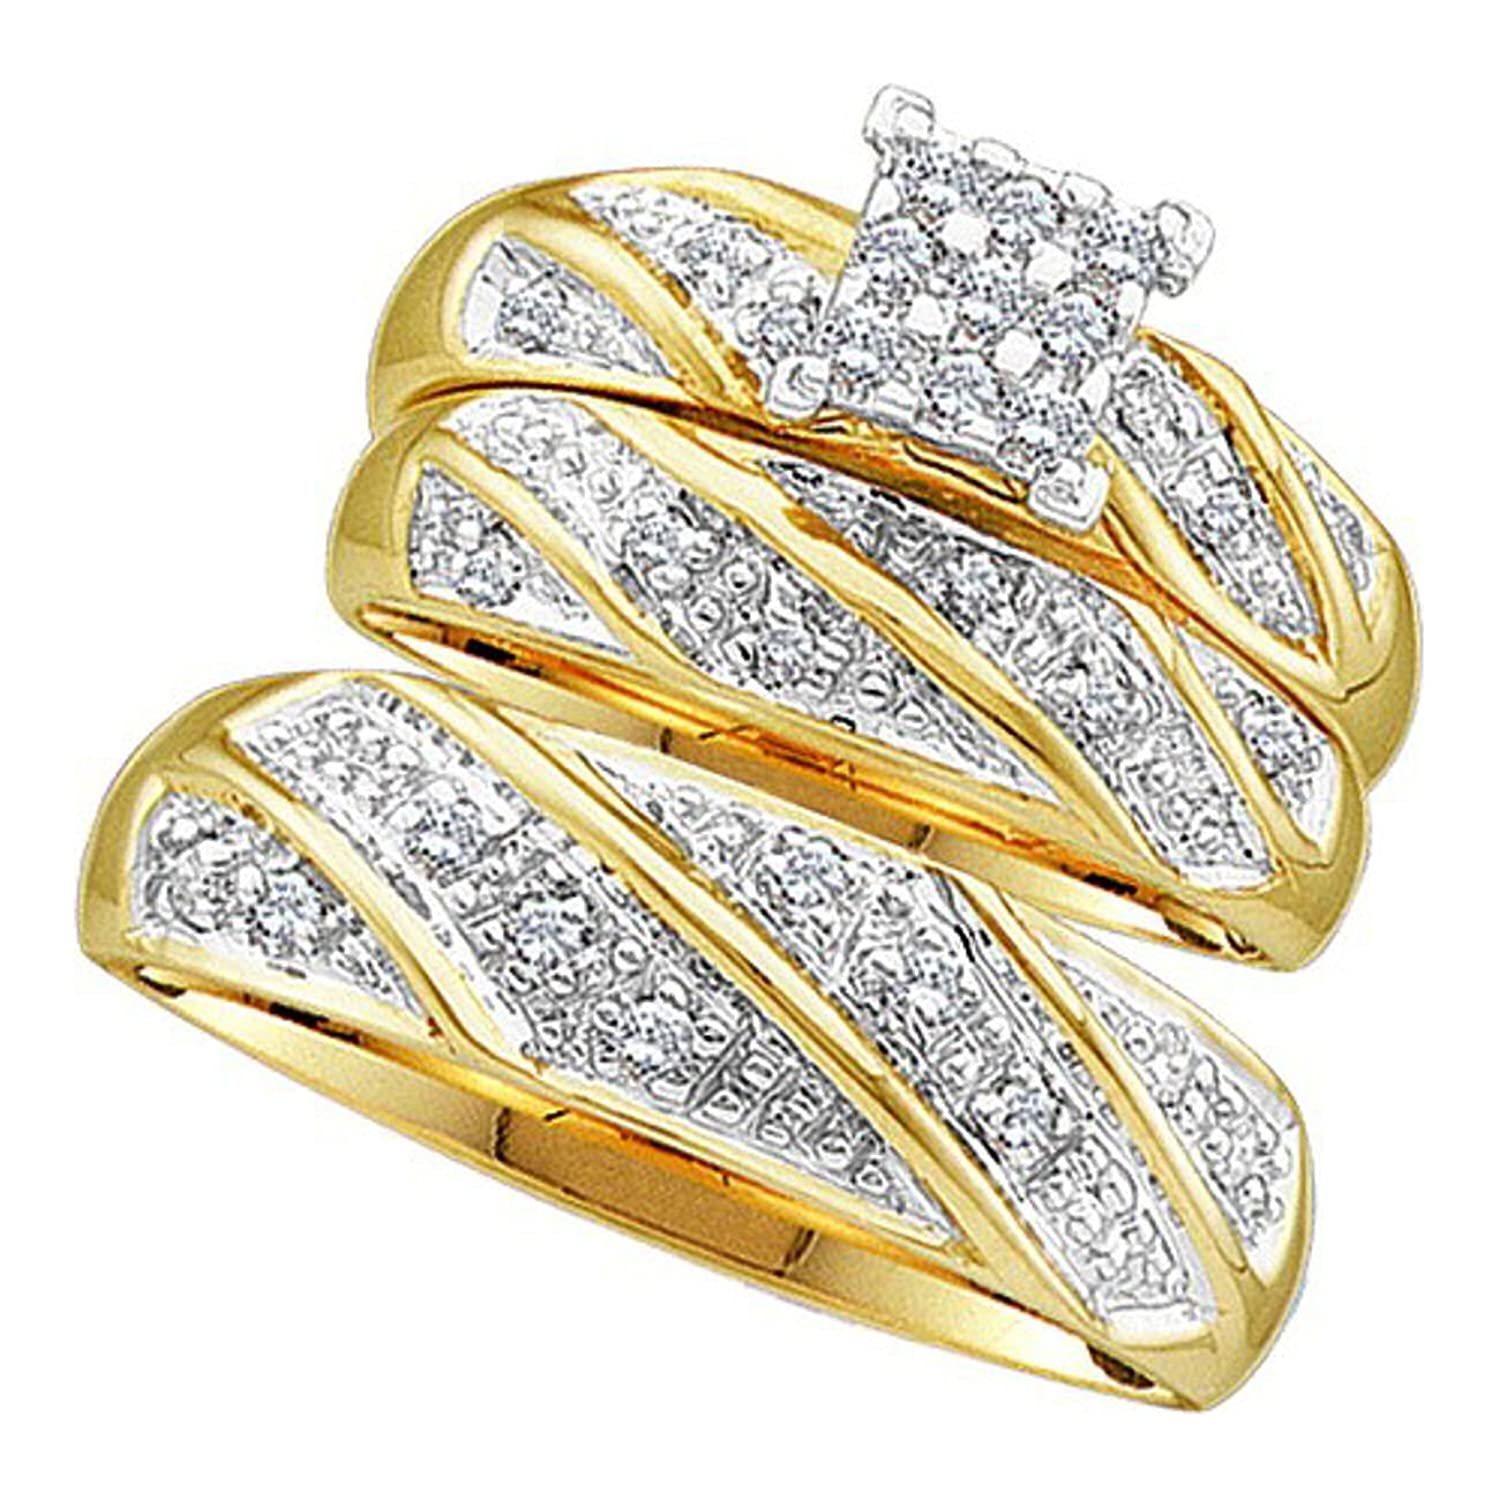 10k Yellow Gold Mens and Ladies His & Hers Trio 3 Three Ring Bridal Engagement Wedding Ring Band Set (1/3 cttw)